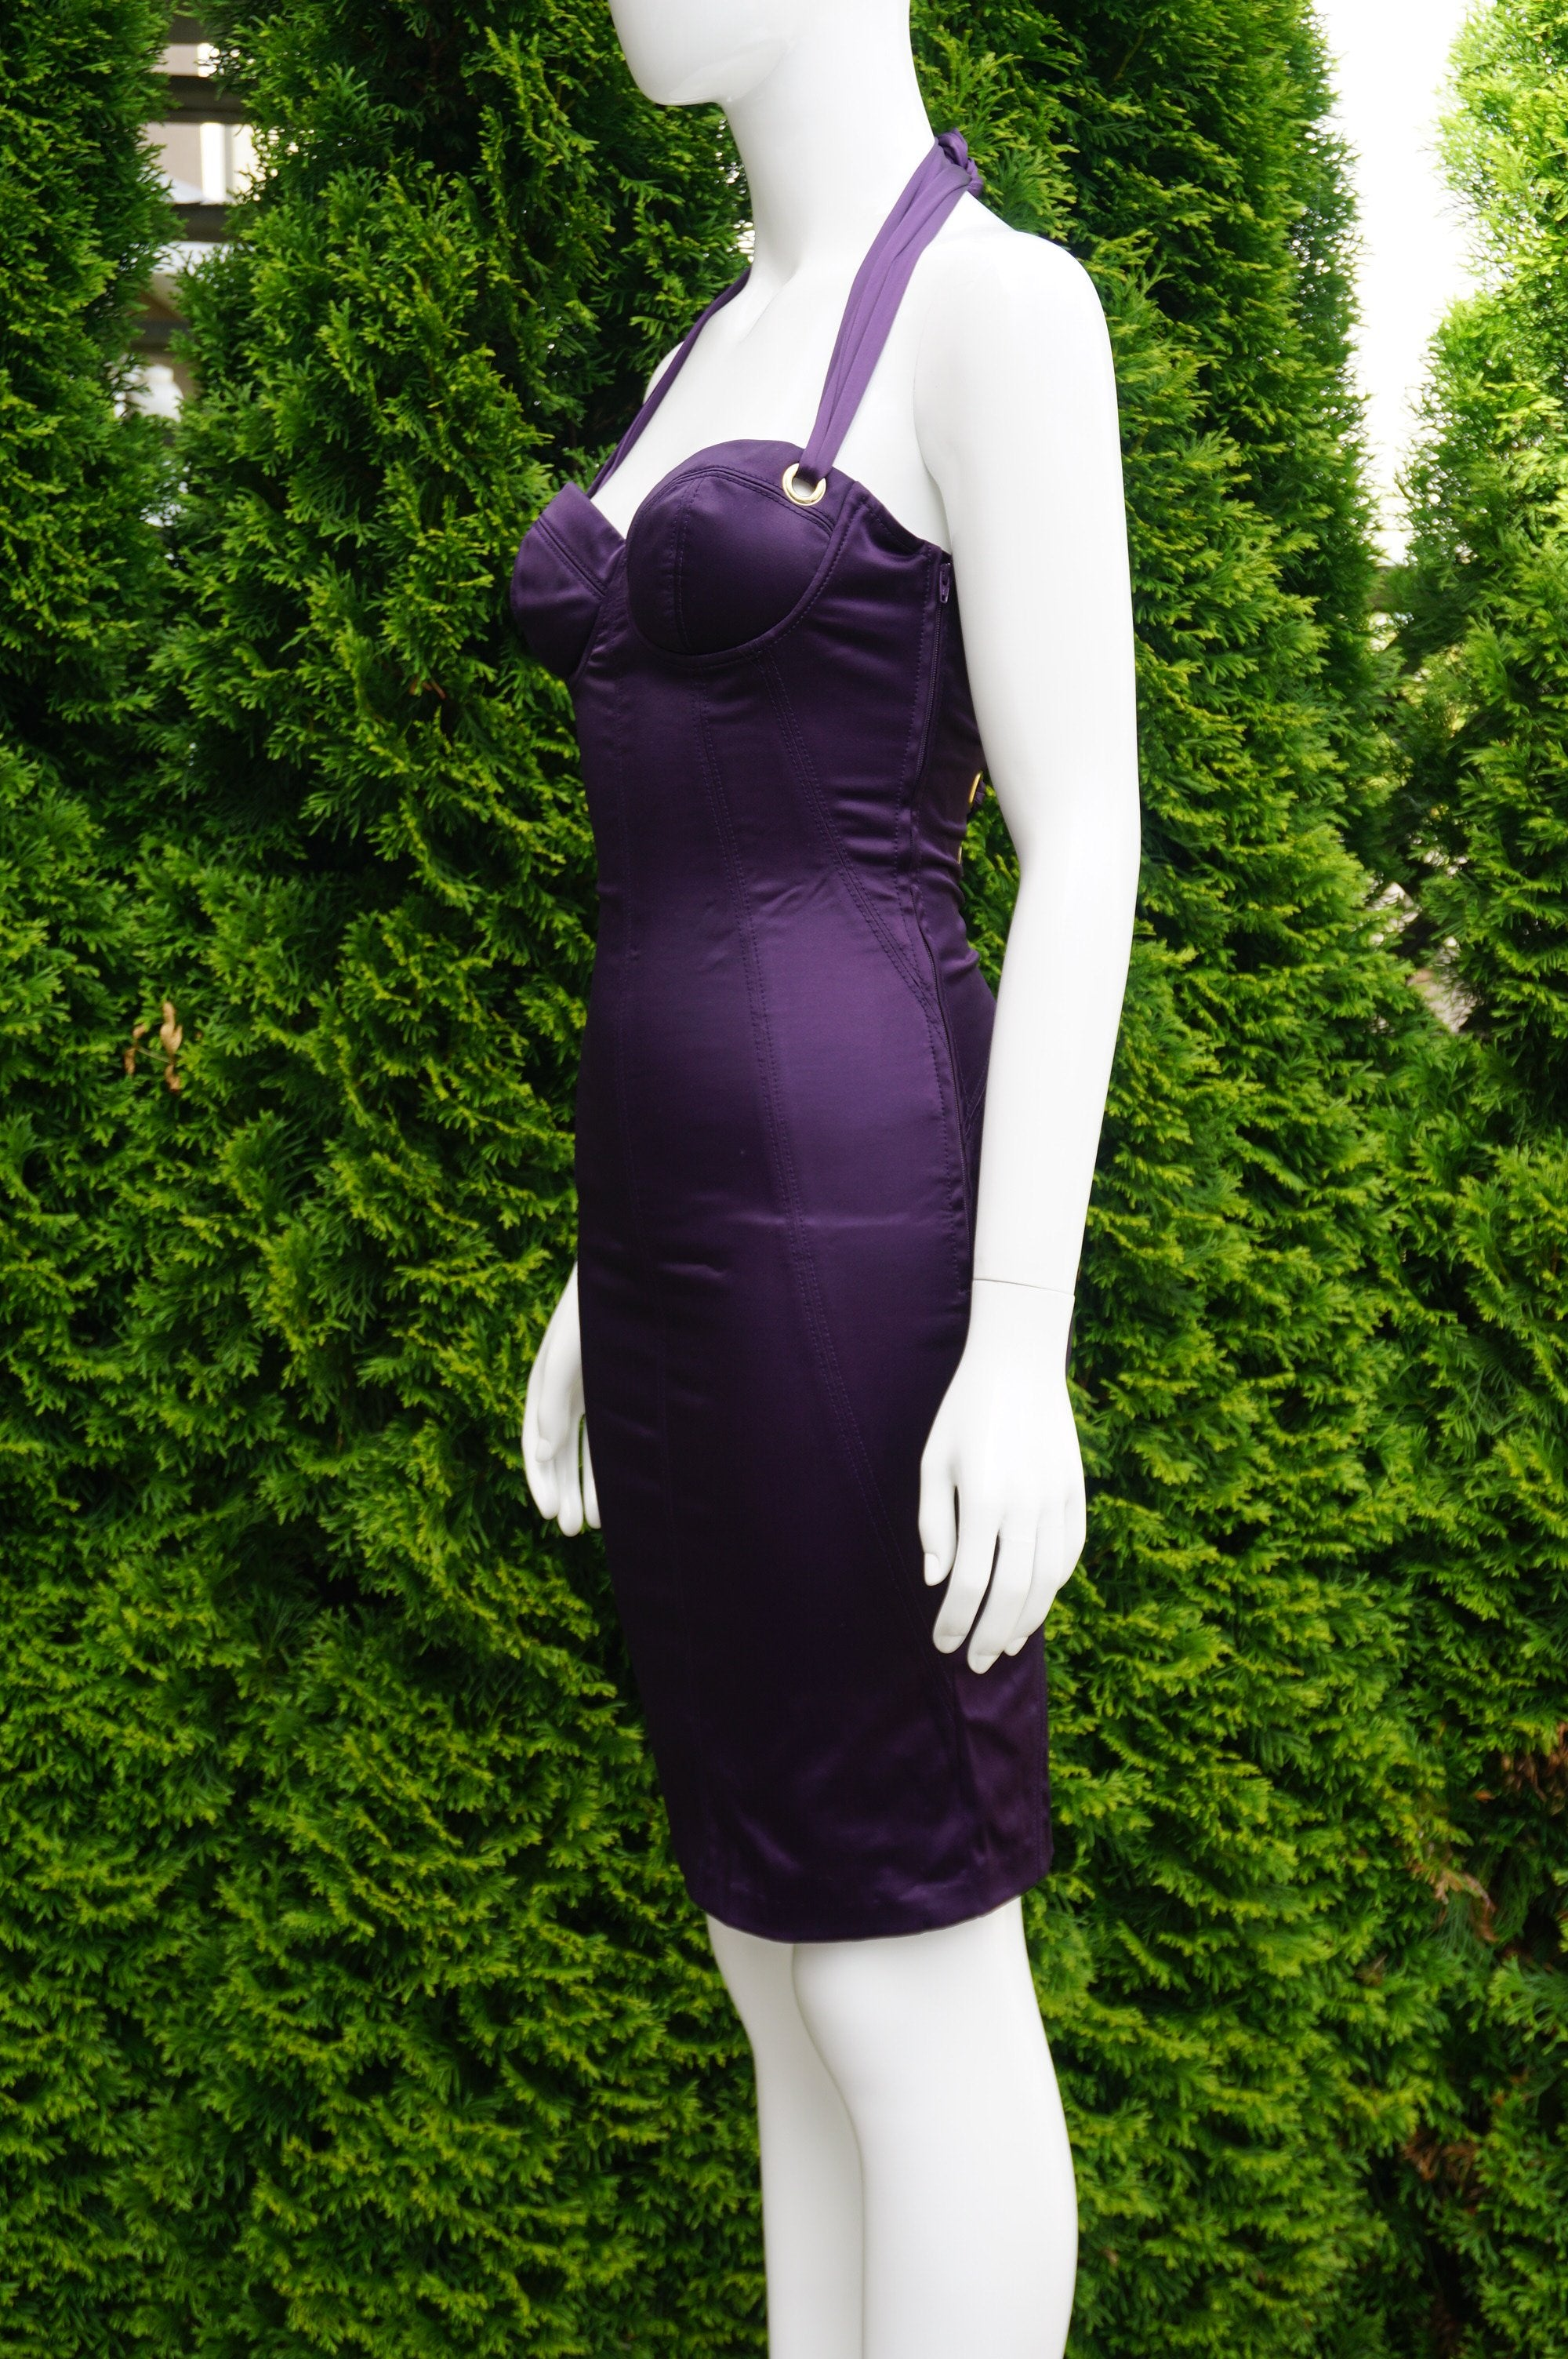 Marciano Purple Sleeveless Mini Dress with Adjustable Straps, Breast 28 inches, waist 24 inches (adjsutable straps leaving some room for size differnces, length 31 inches measured from top of breast., Purple, 53% Polyester, 44% cotton, 3% Spandes, women's Dresses & Rompers, women's Purple Dresses & Rompers, Marciano women's Dresses & Rompers, mini dress, purple dress, bodycon dress,